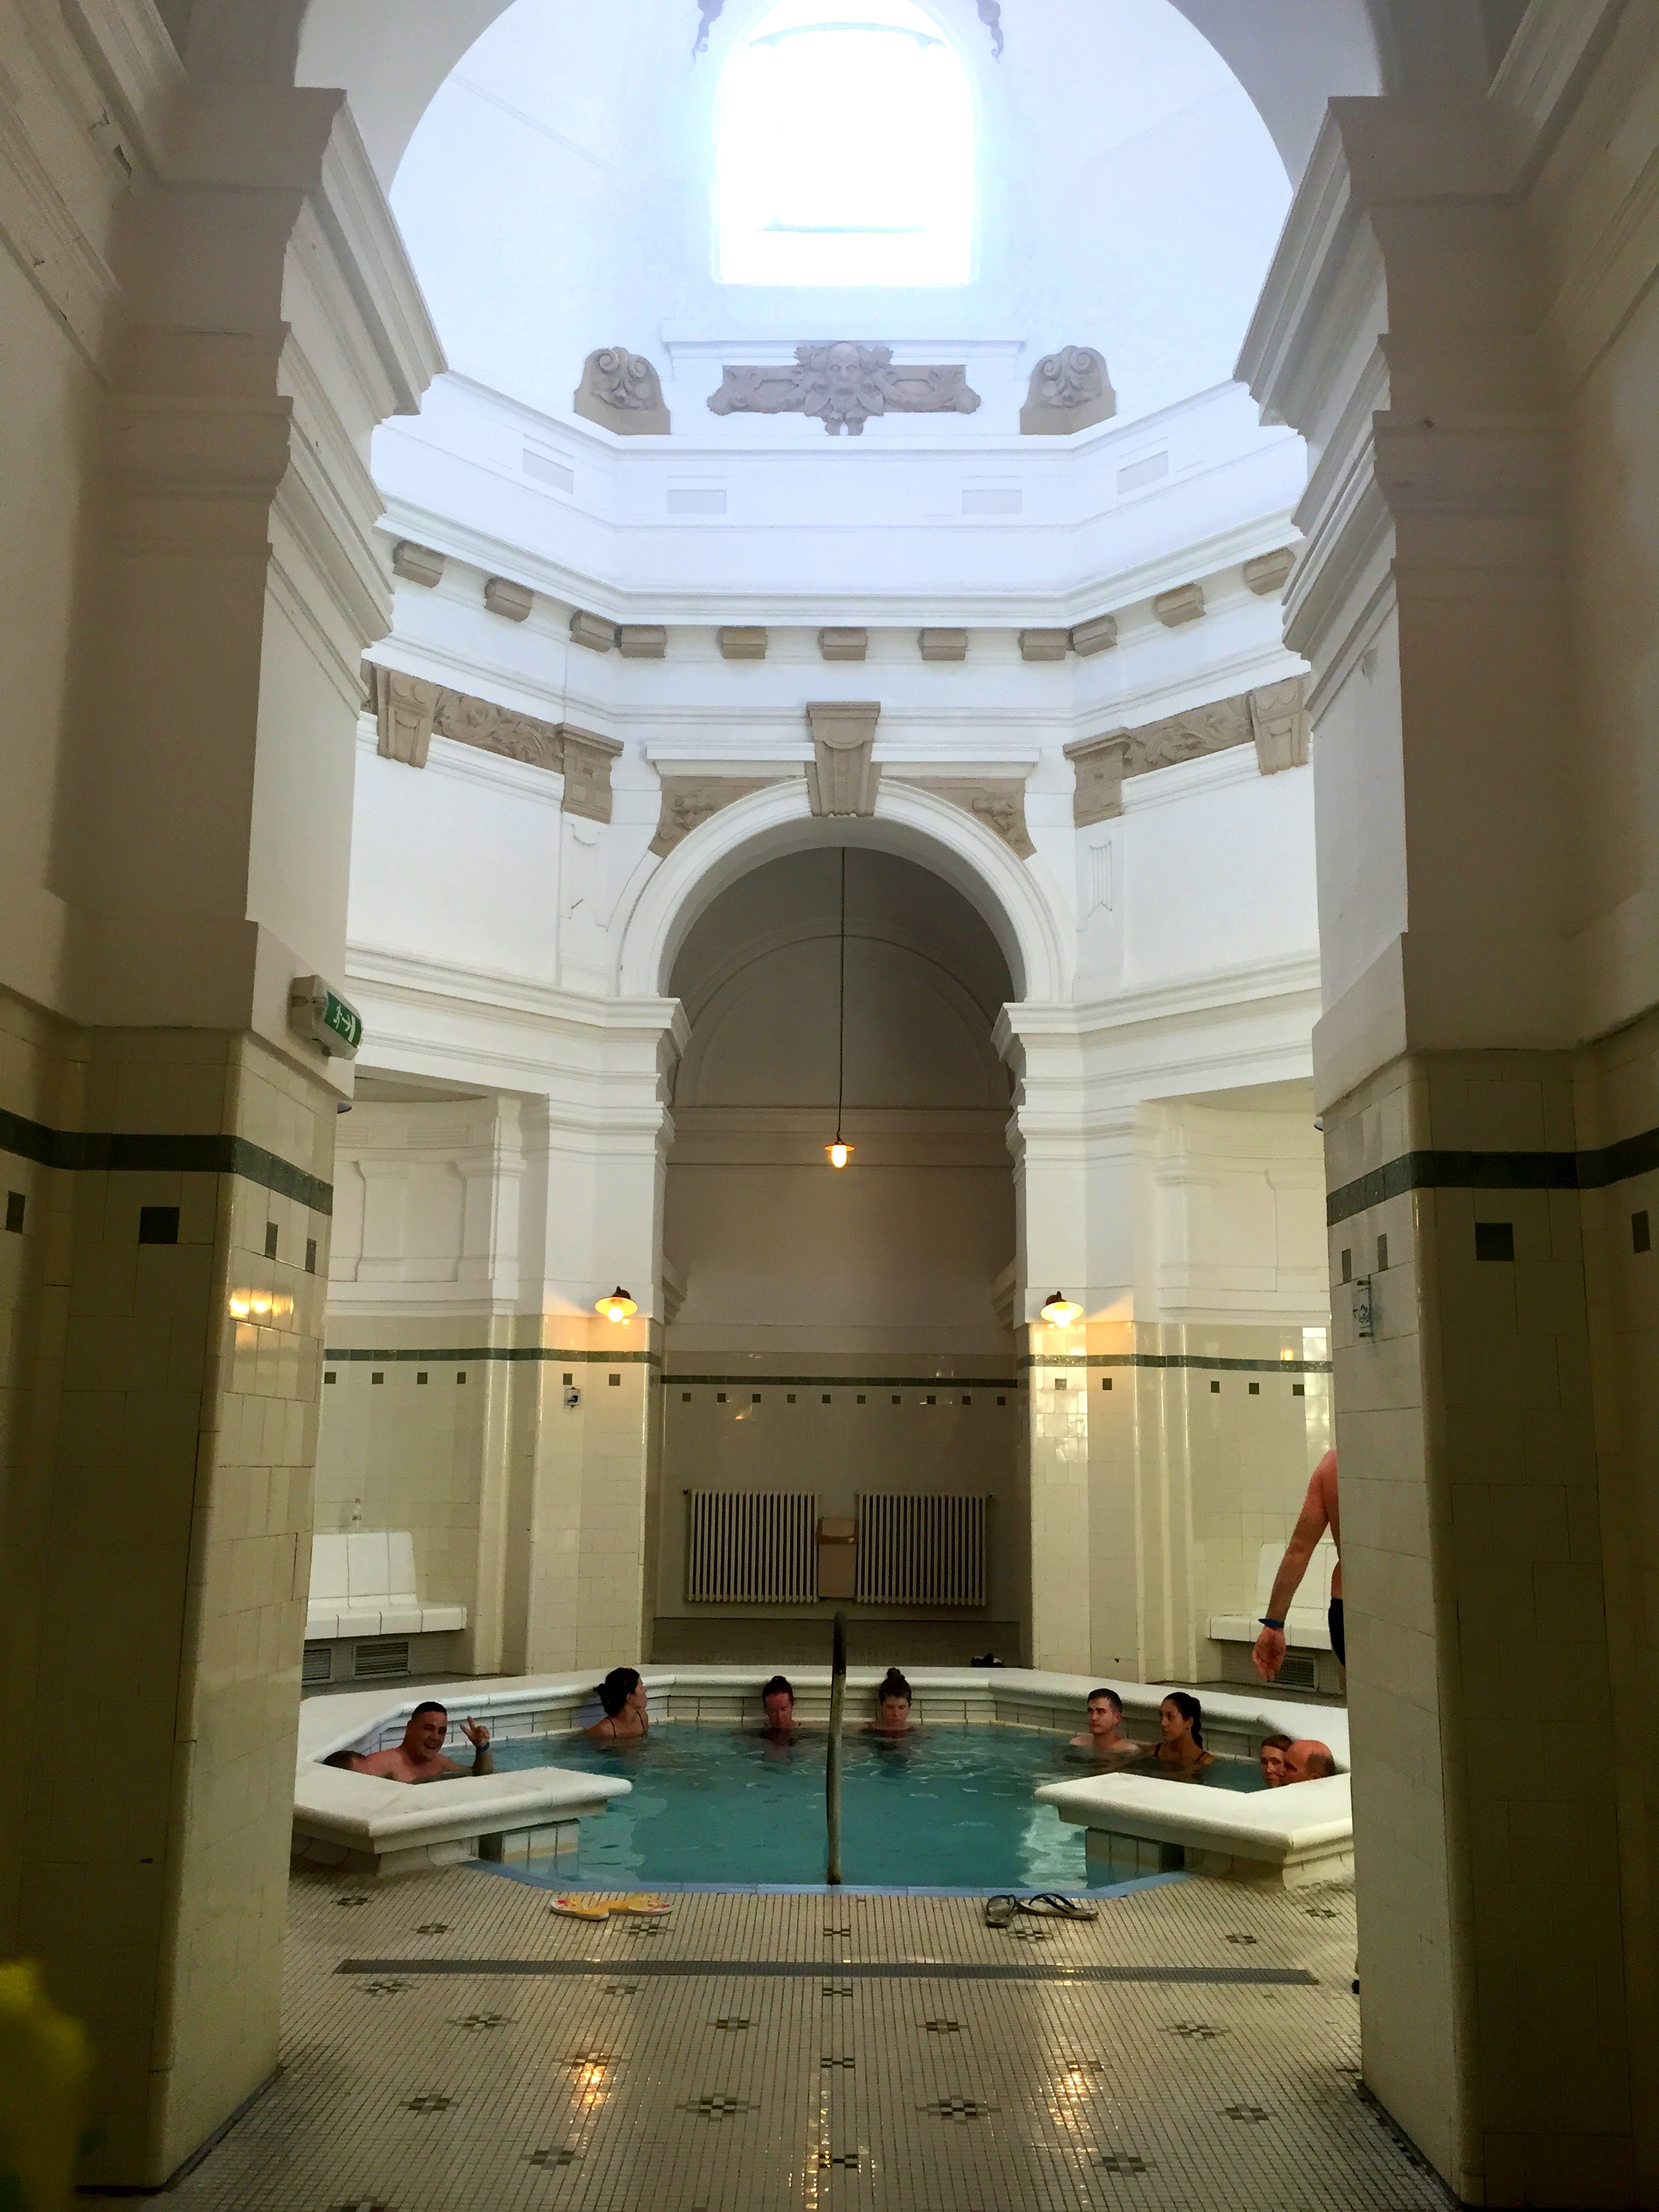 Taking part in a favorite pastime at the largest thermal bath in Europe,   Szechenyi Baths.